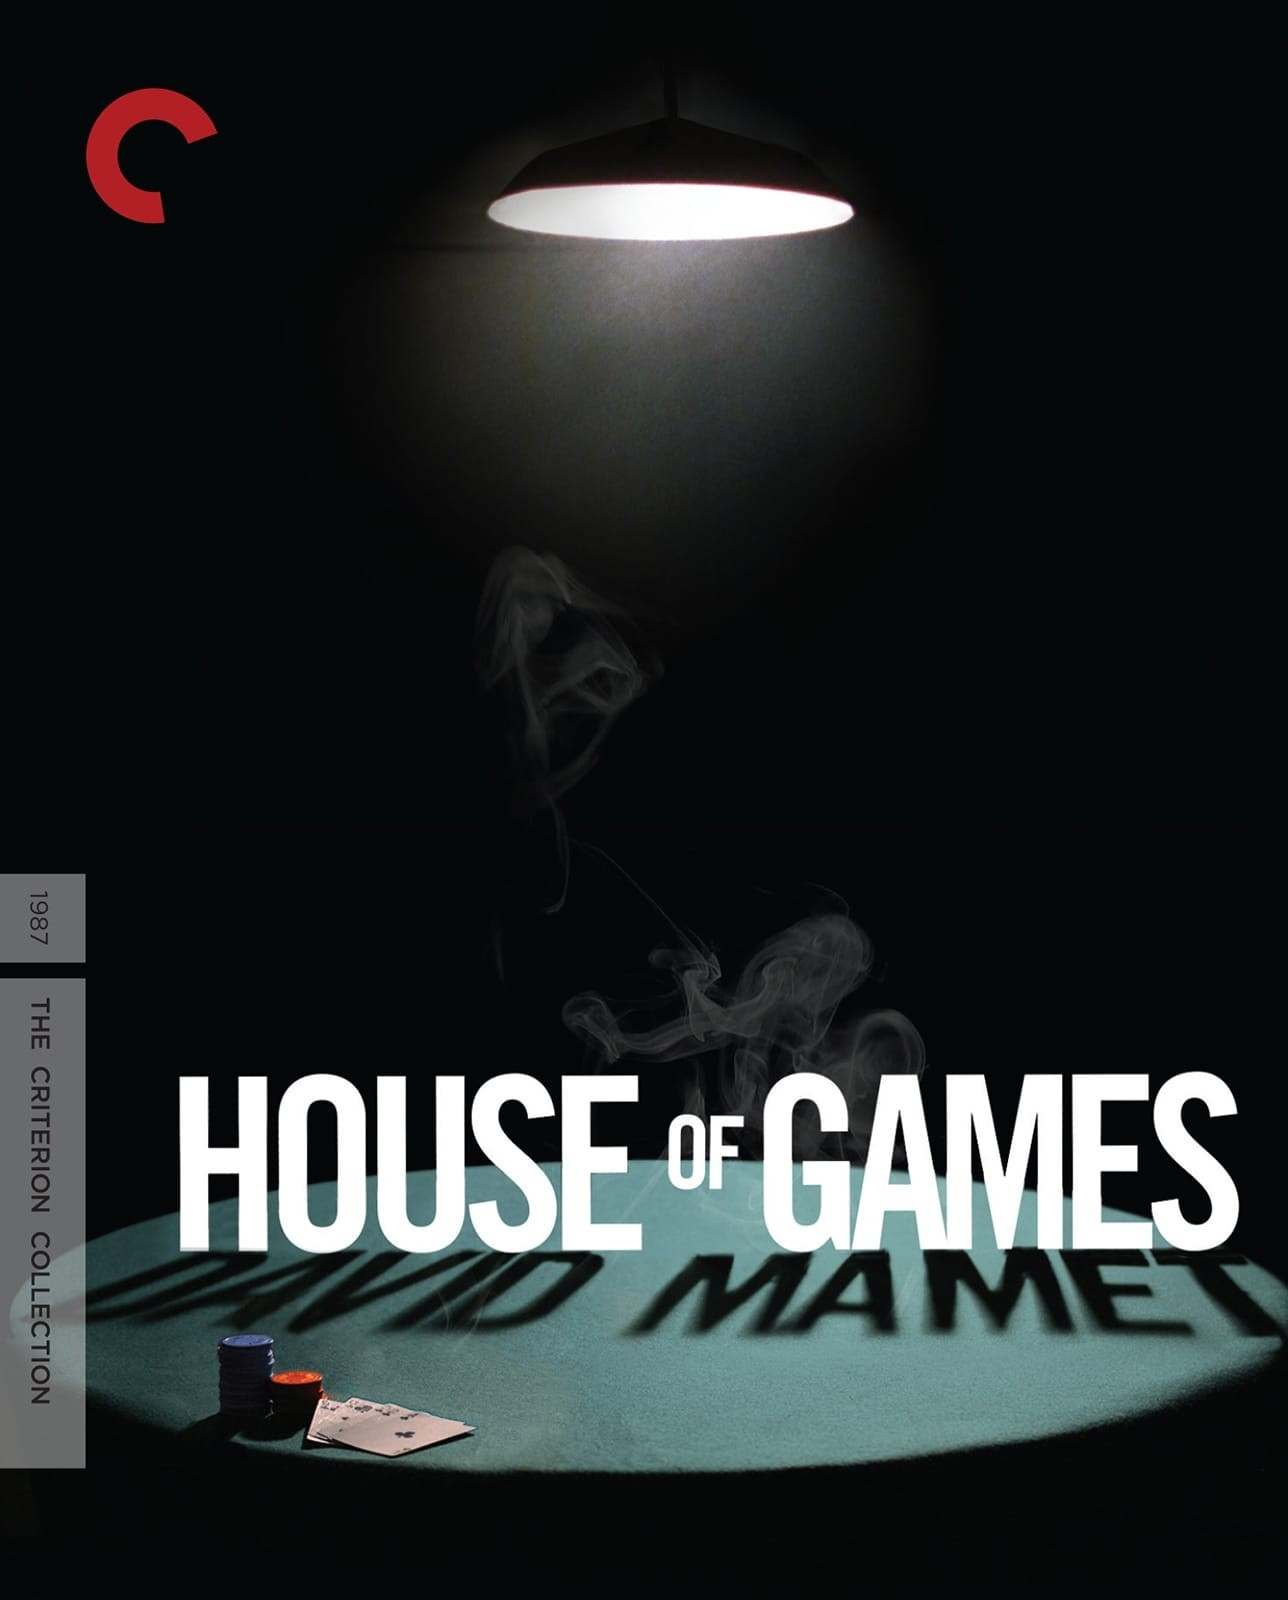 House of Games (The Criterion Collection)(Blu-ray)(Region A)